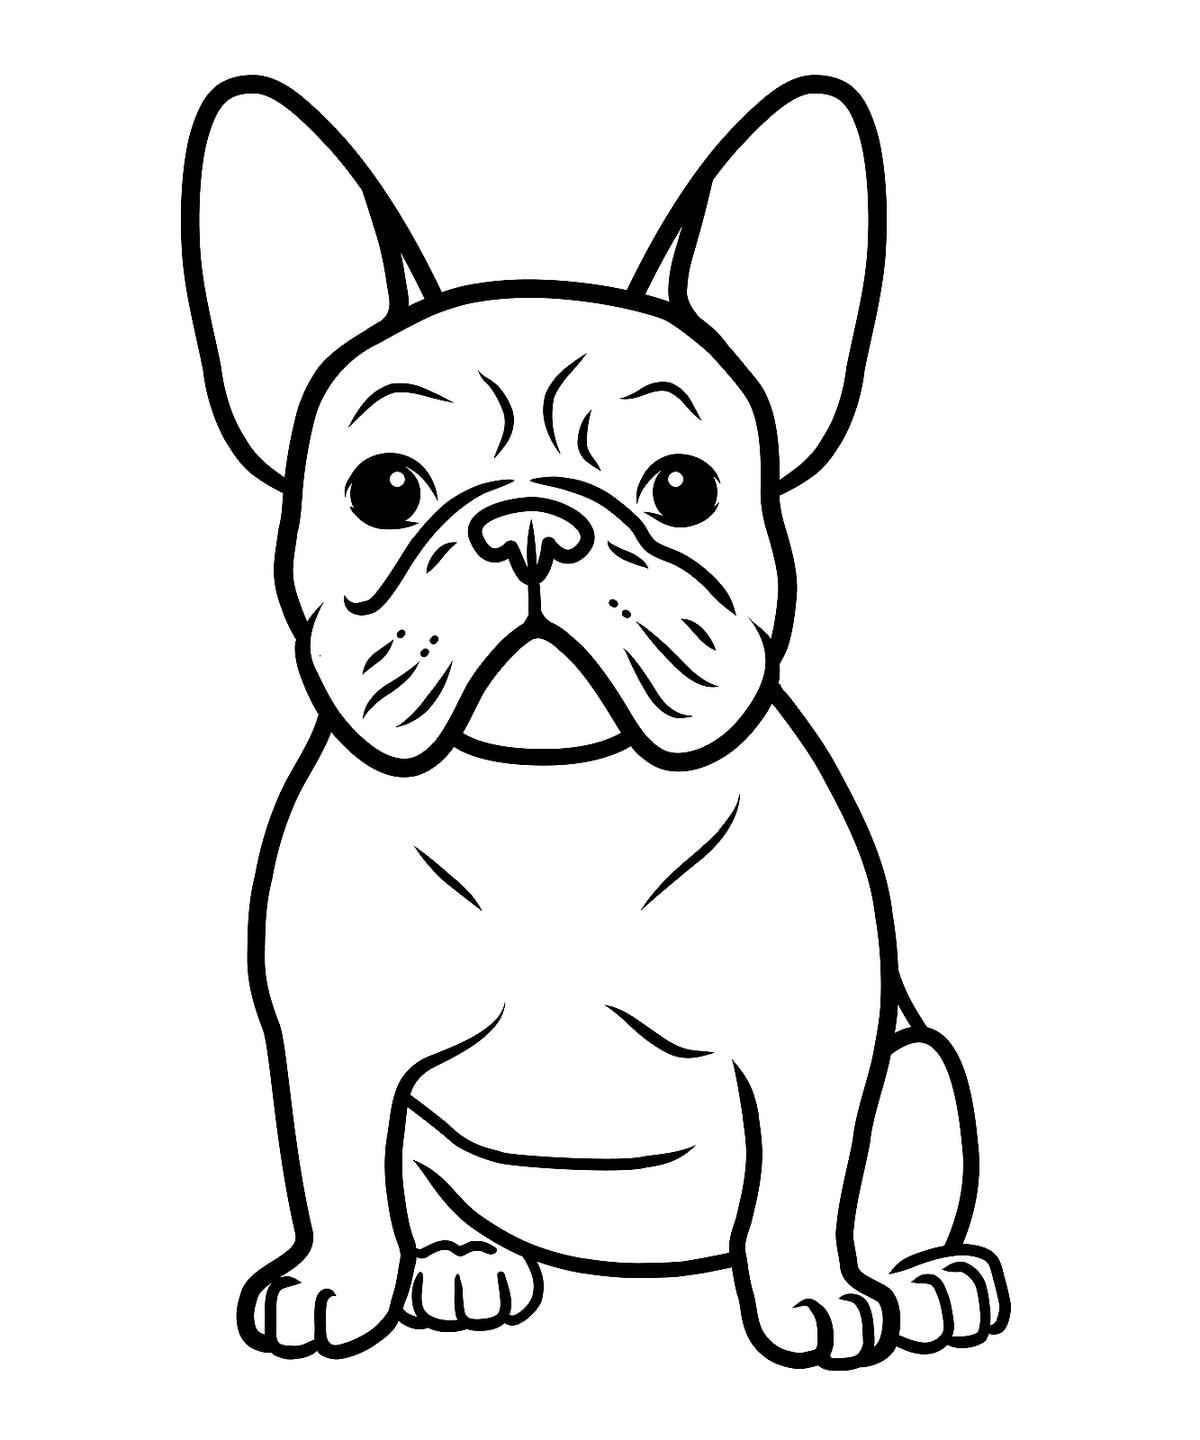 coloring pages of dogs printable dog breed coloring pages printable dogs pages coloring of